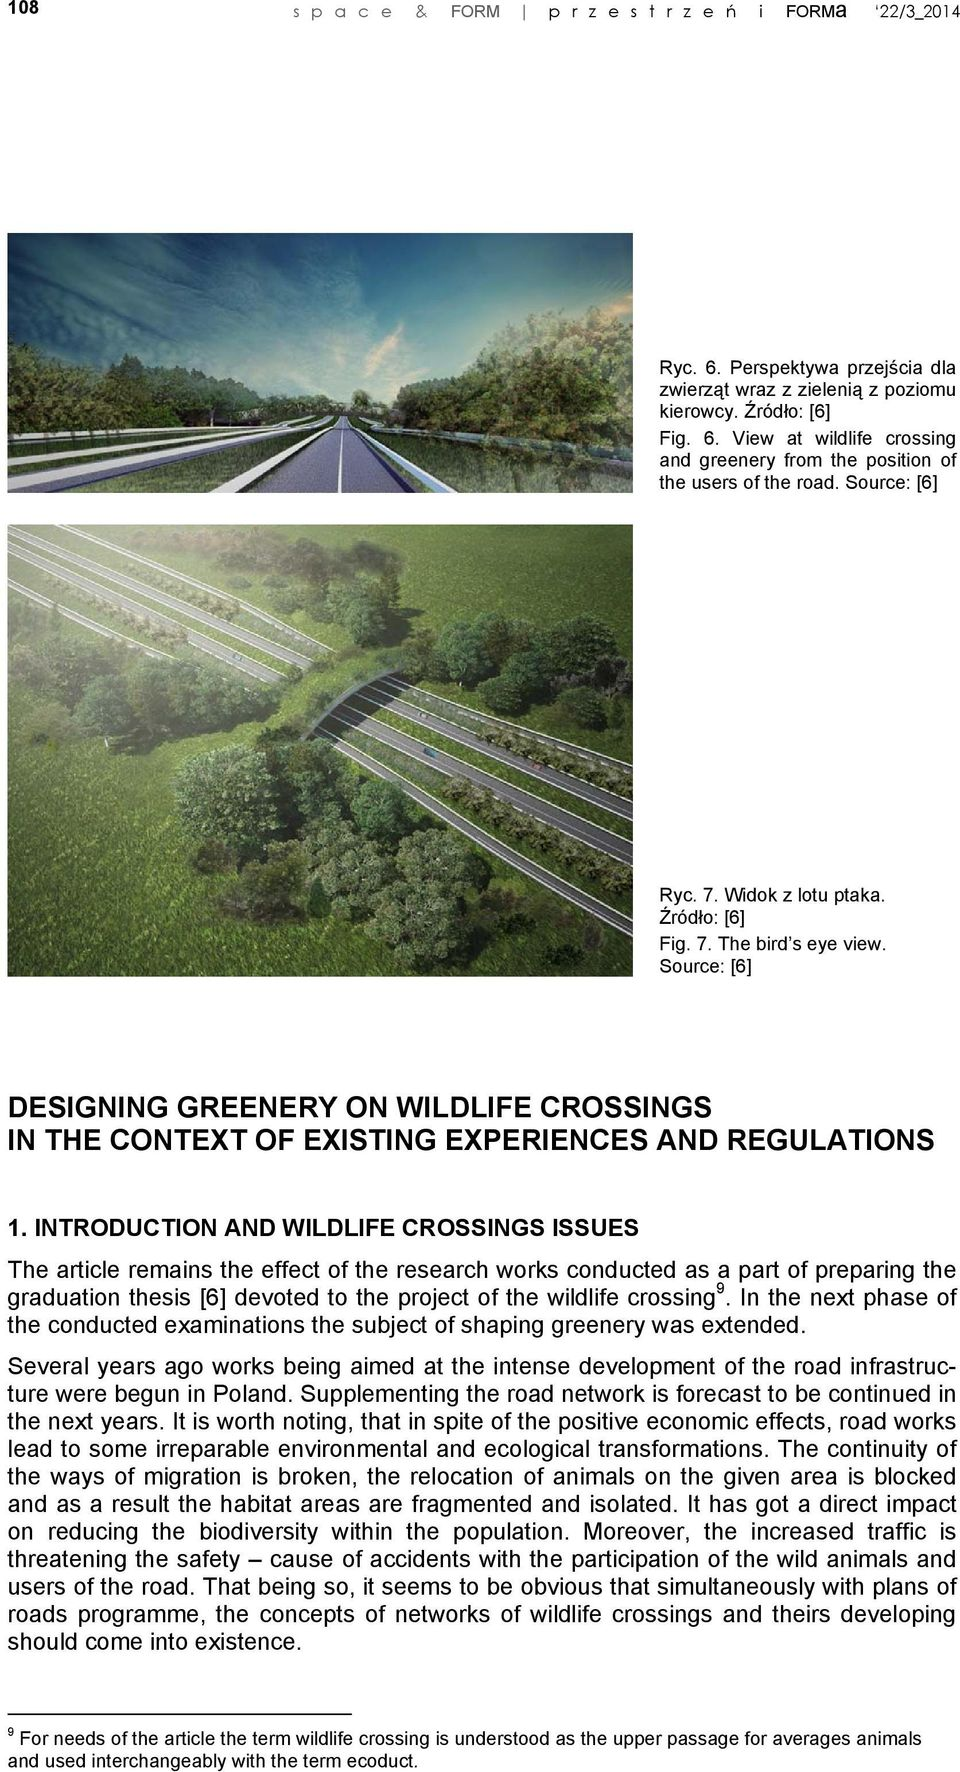 INTRODUCTION AND WILDLIFE CROSSINGS ISSUES The article remains the effect of the research works conducted as a part of preparing the graduation thesis [6] devoted to the project of the wildlife